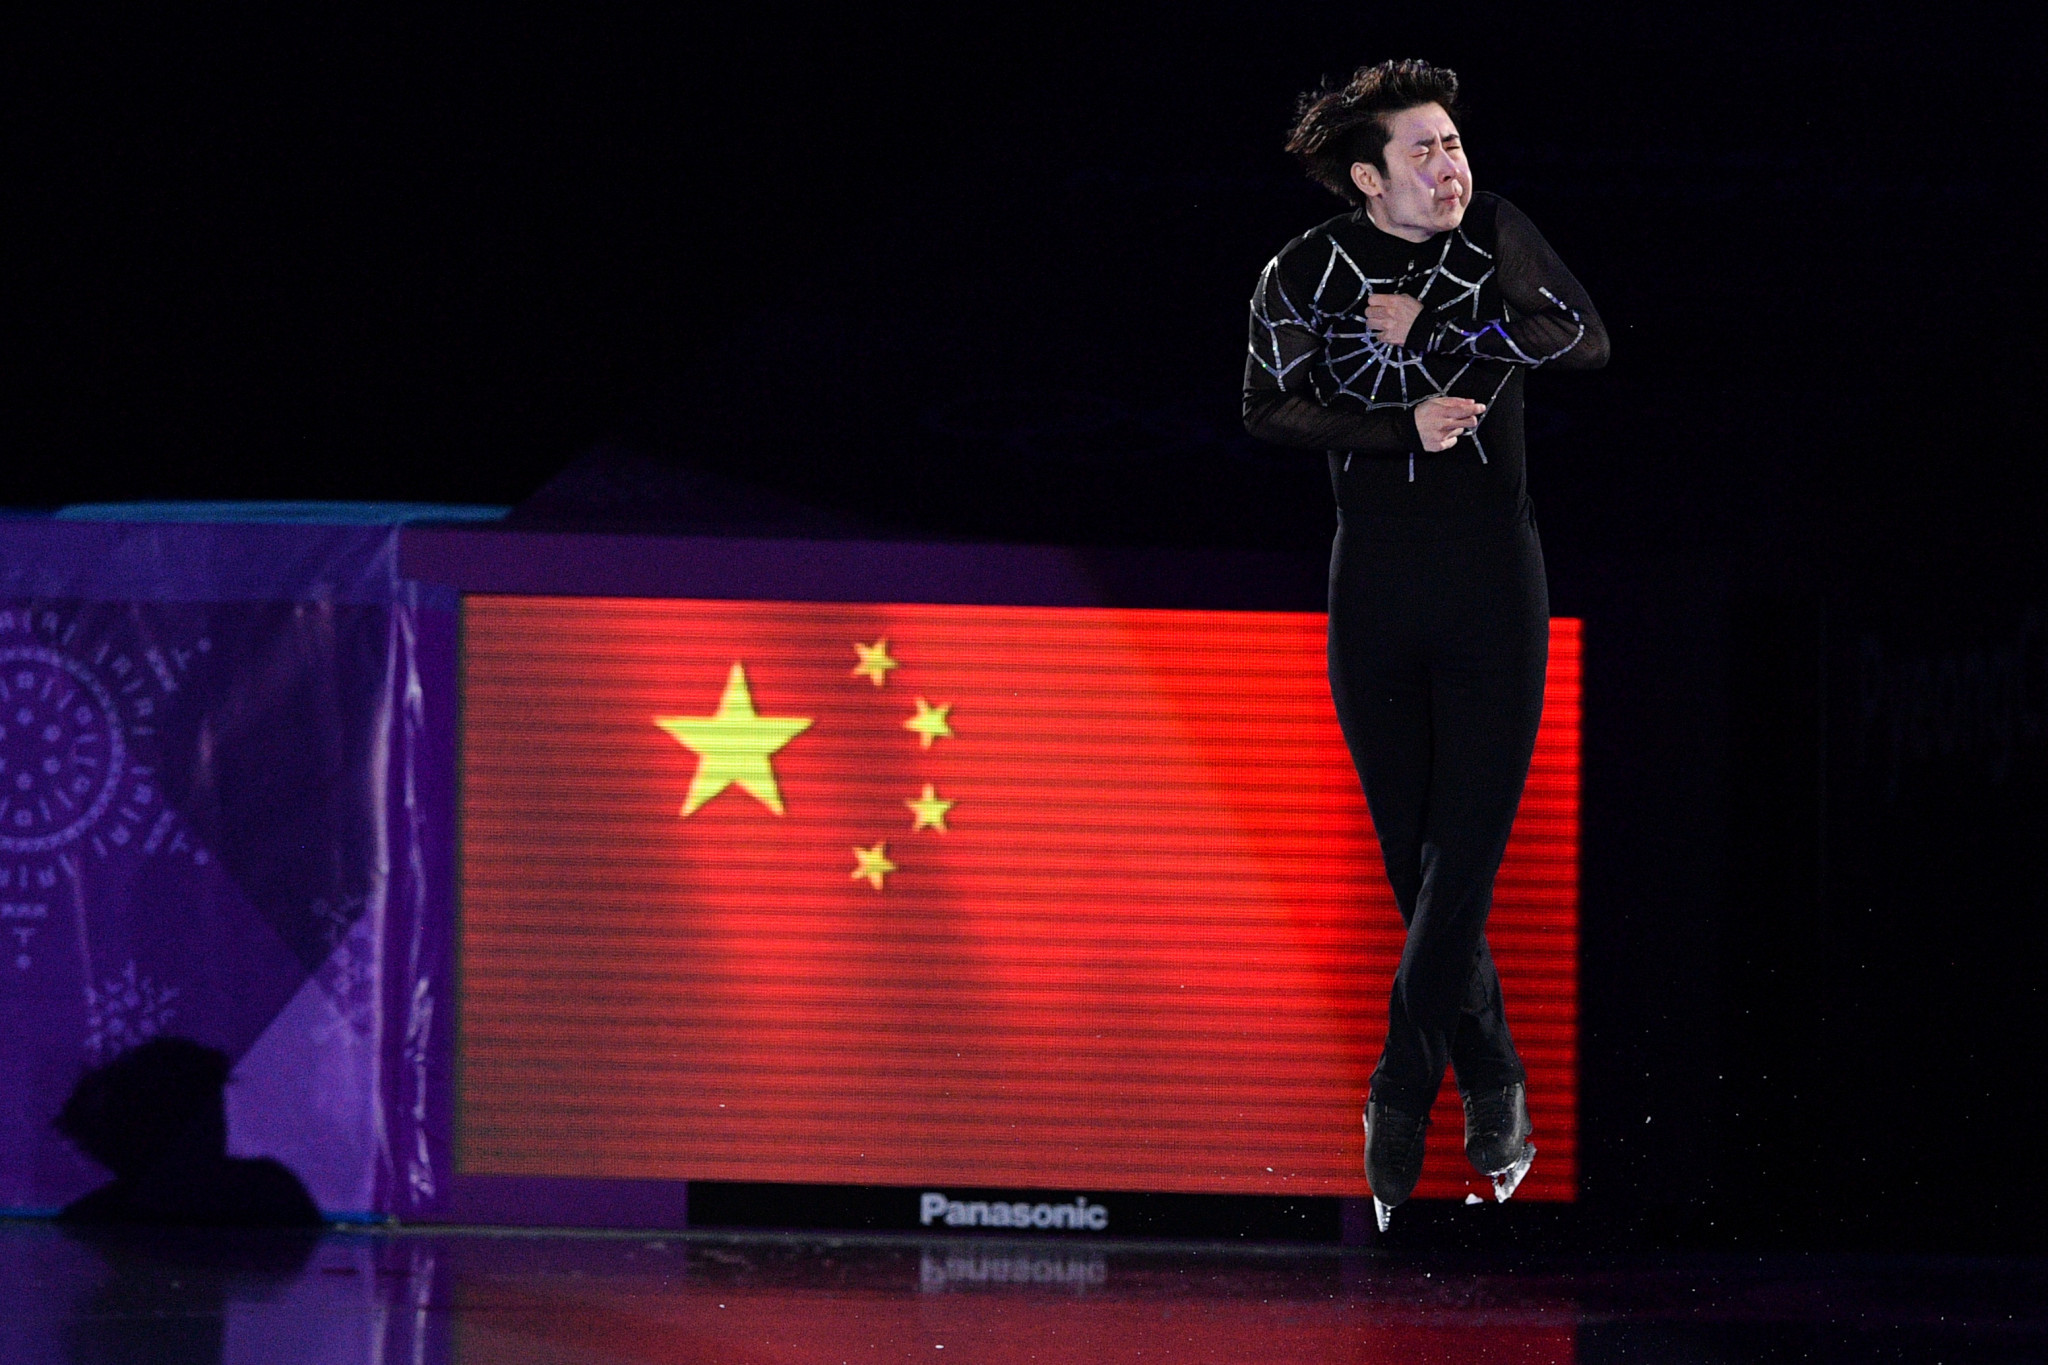 Embarrassment for China ahead of Beijing 2022 as ISU bans two officials for biased judging at Pyeongchang 2018